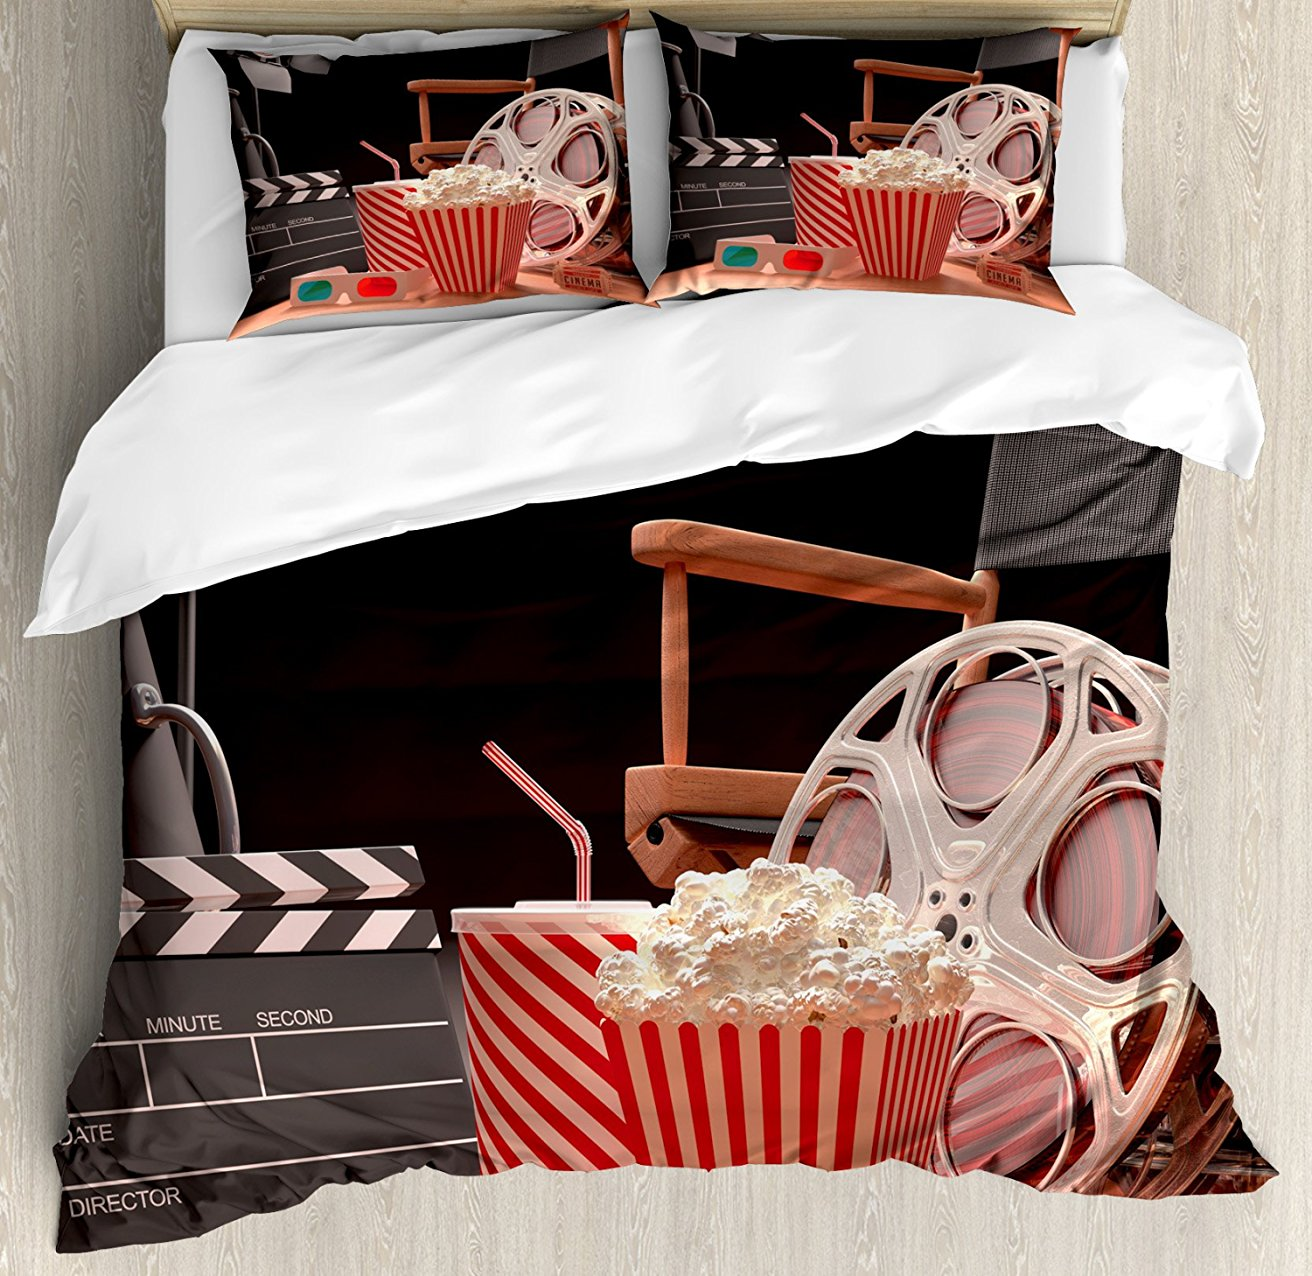 Movie Theater Duvet Cover Set Objects of the Film Industry Hollywood Motion Picture Cinematography Concept 4 Piece Bedding Set image